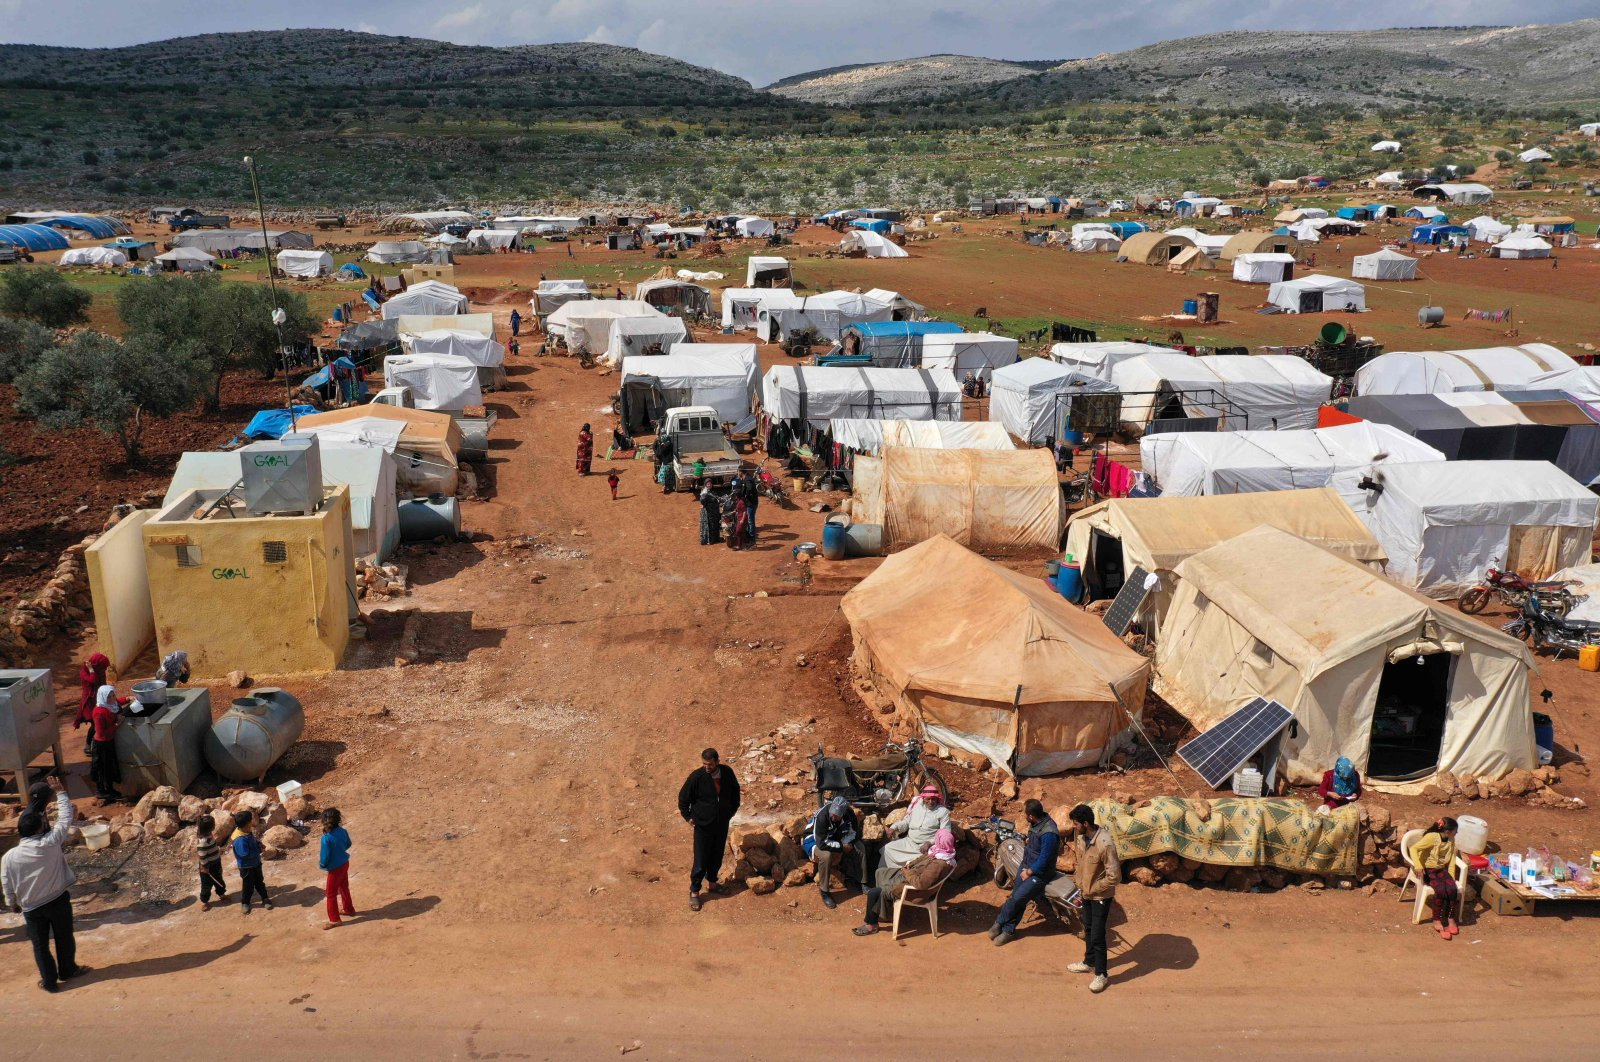 A displaced camp in the town of Kafr Uruq southwest of the town of Sarmada in Syria's northwestern Idlib province, March 17, 2020. (AFP Photo)